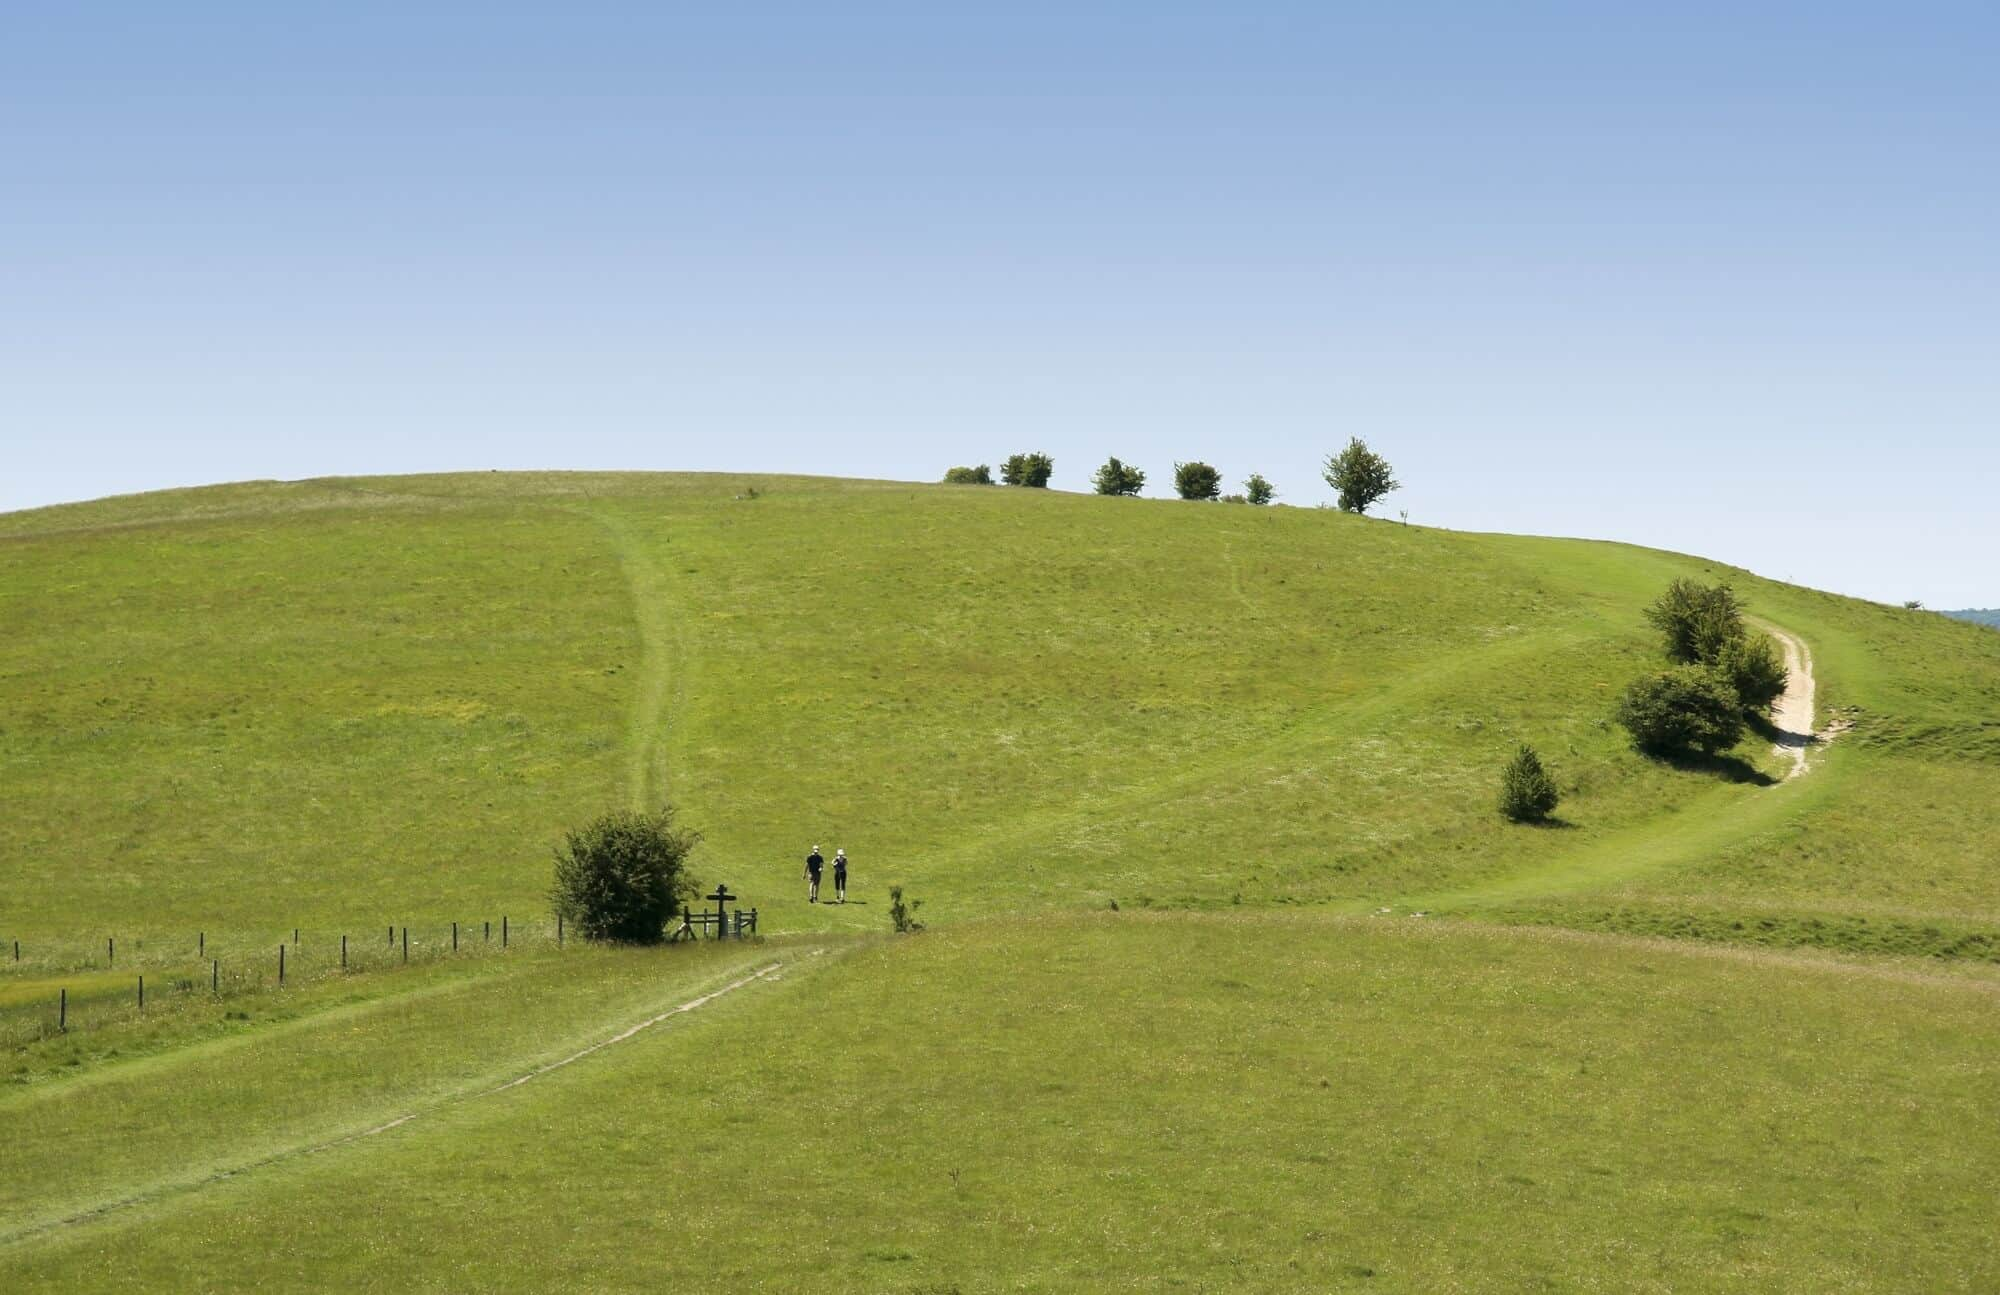 The Ridgeway Walking Holidays